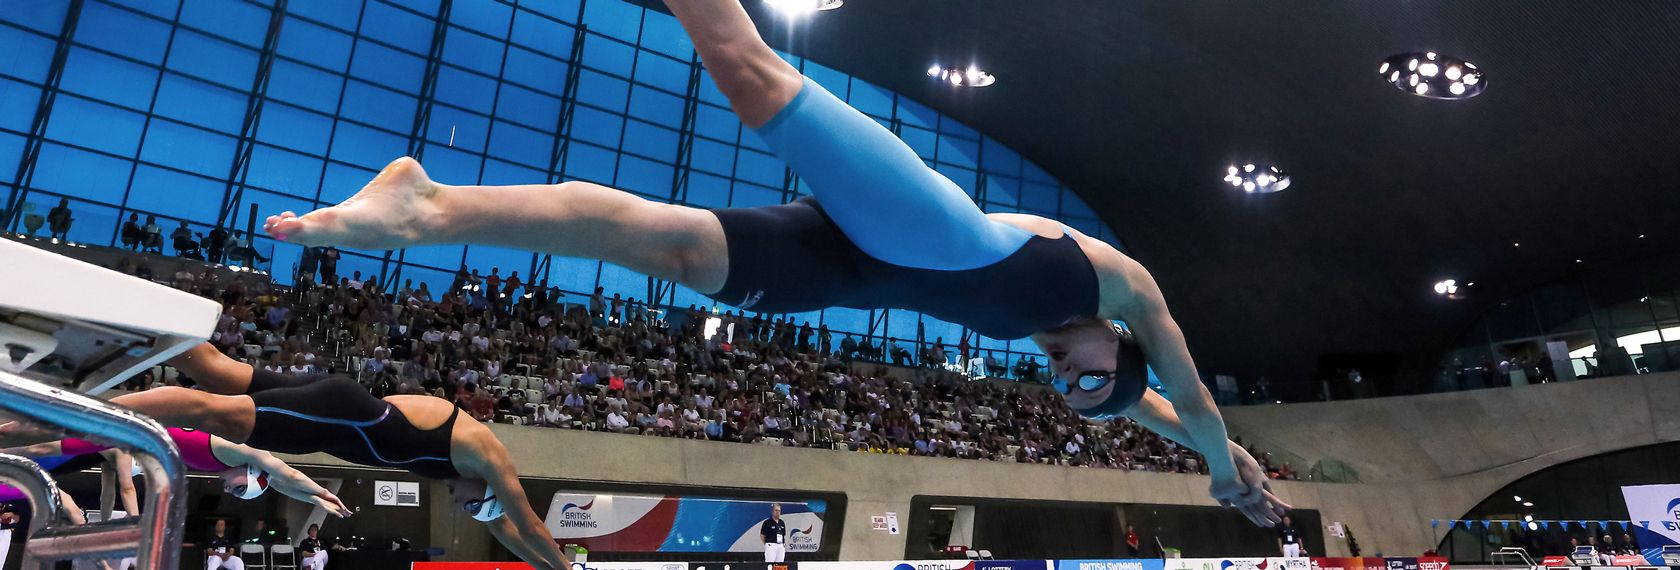 jazz_carlin_dive_london_aquatics_british_champs.jpg